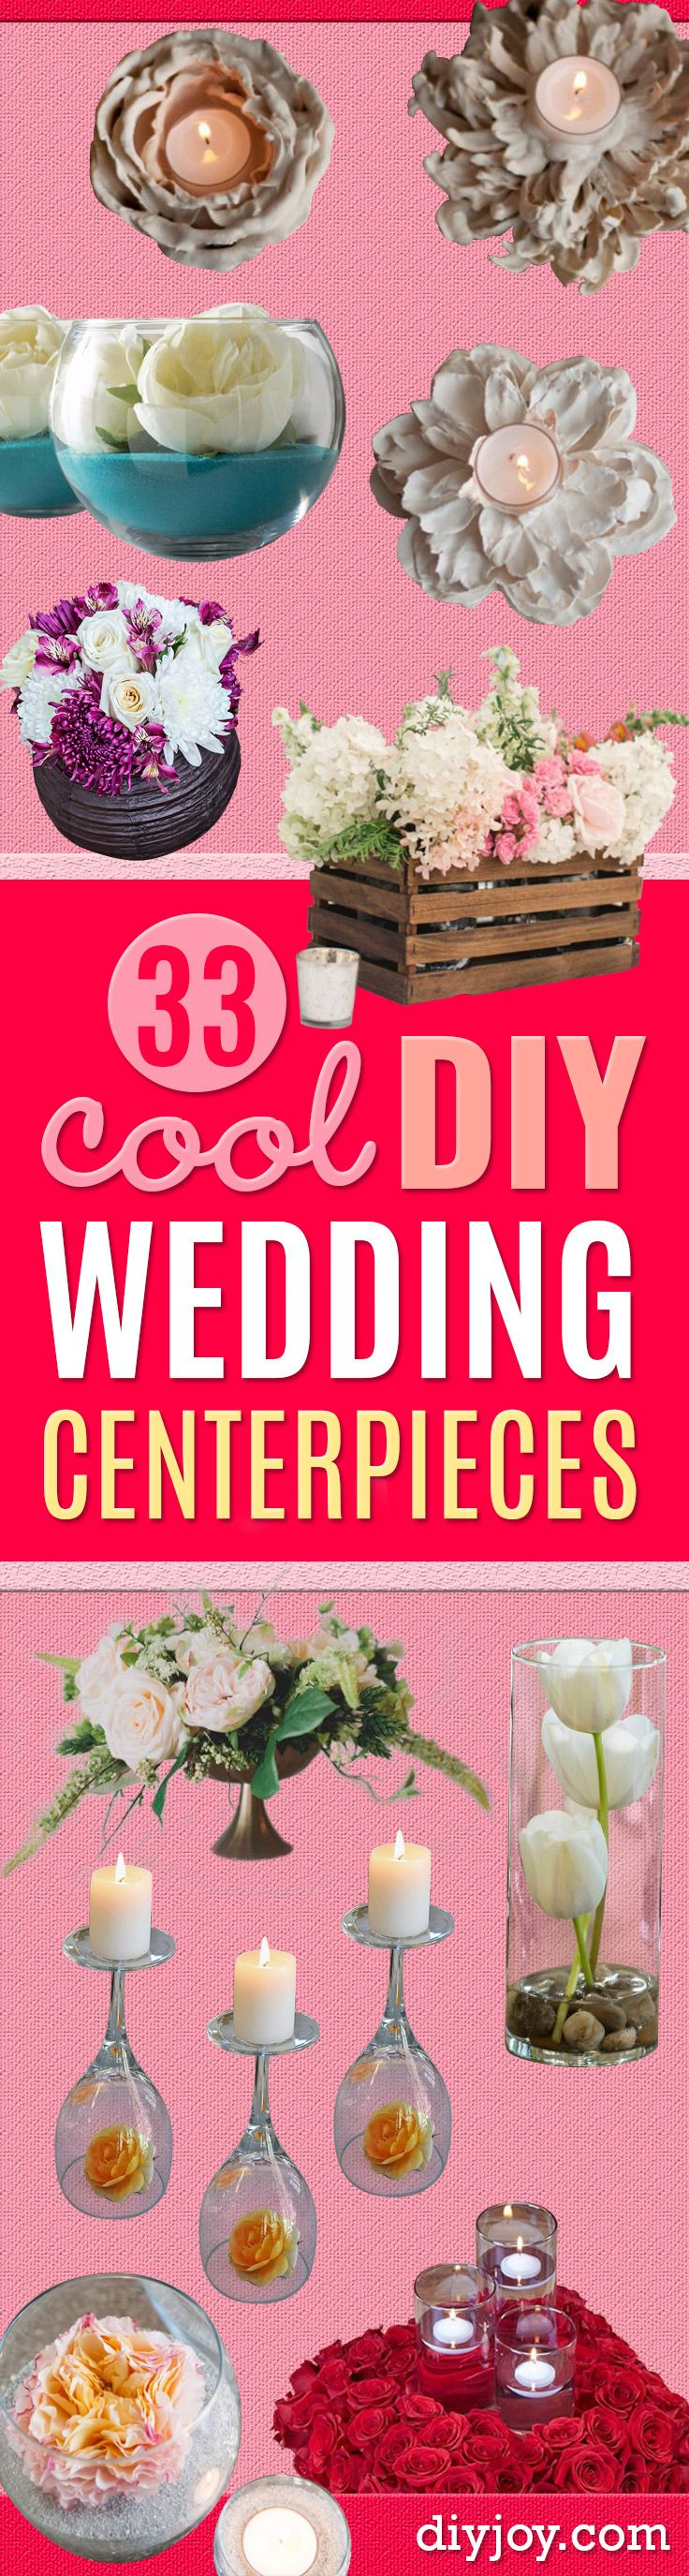 Best 25 inexpensive wedding centerpieces ideas on pinterest best 25 inexpensive wedding centerpieces ideas on pinterest inexpensive centerpieces inexpensive wedding flowers and inexpensive wedding ideas solutioingenieria Choice Image